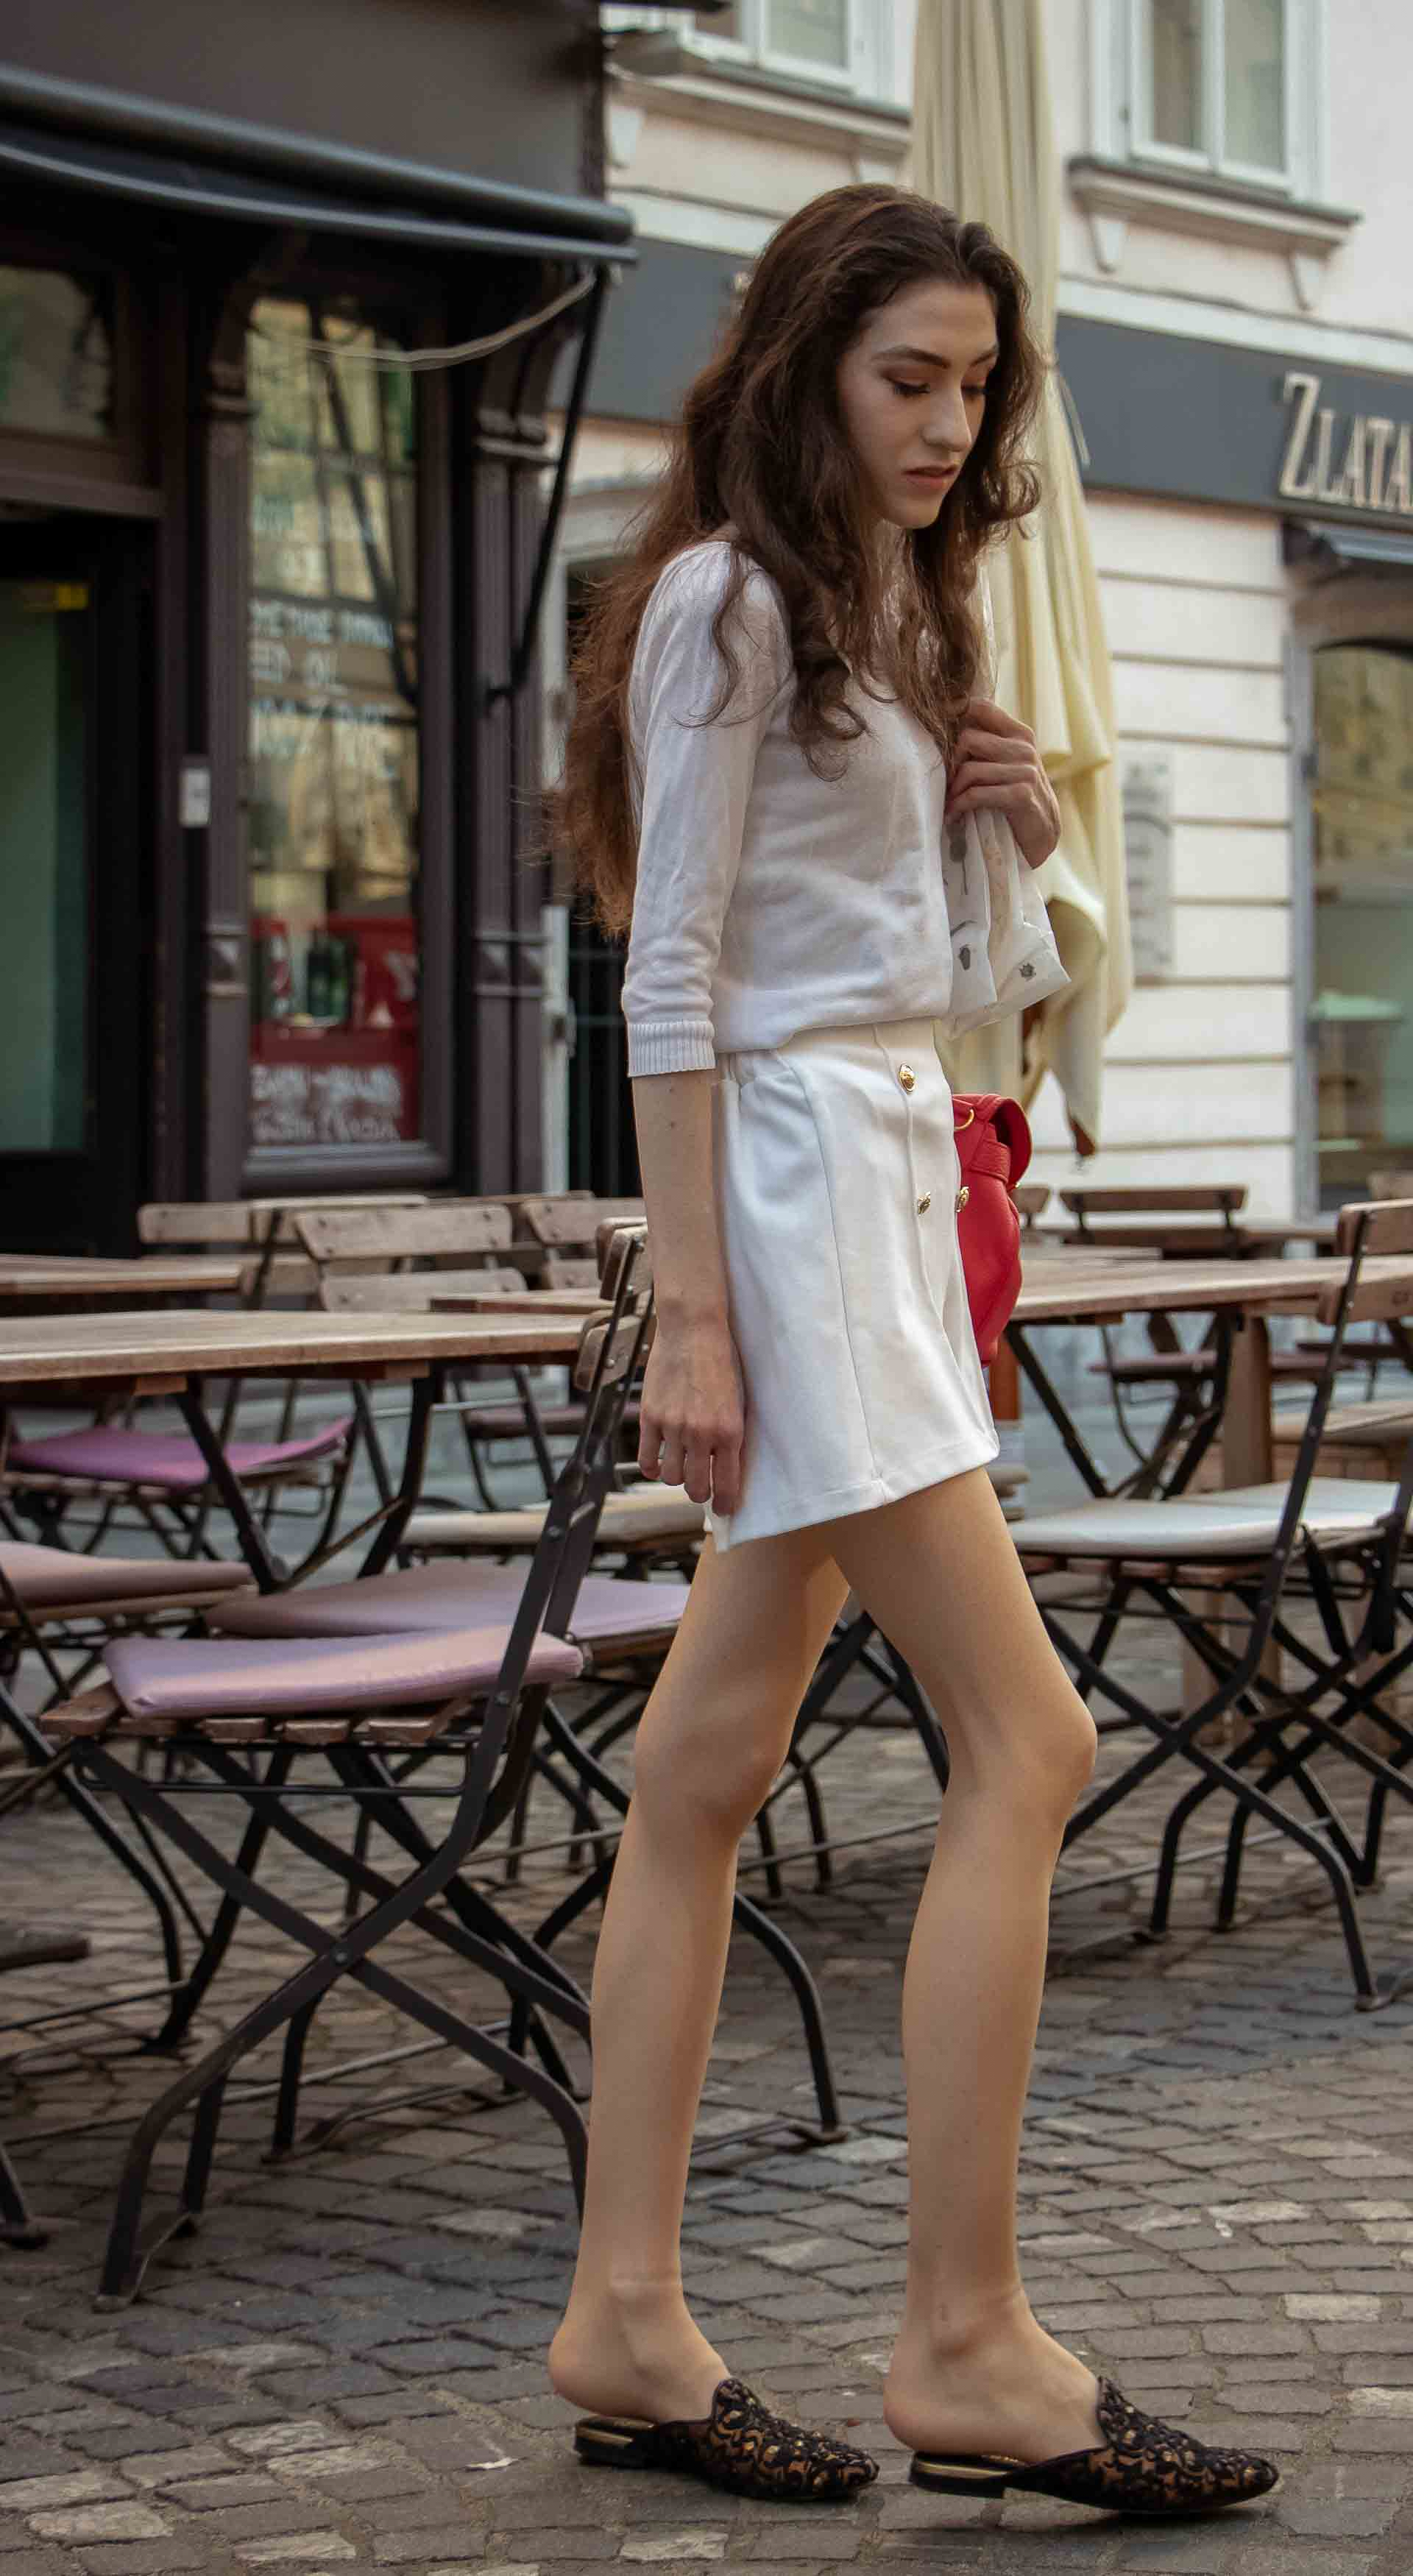 Beautiful Slovenian Fashion Blogger Veronika Lipar of Brunette from Wall wearing all in white outfit, a white sweater, white tailored shorts, black flat slipper mules, pink top handle bag, a paper bag in summer in the city